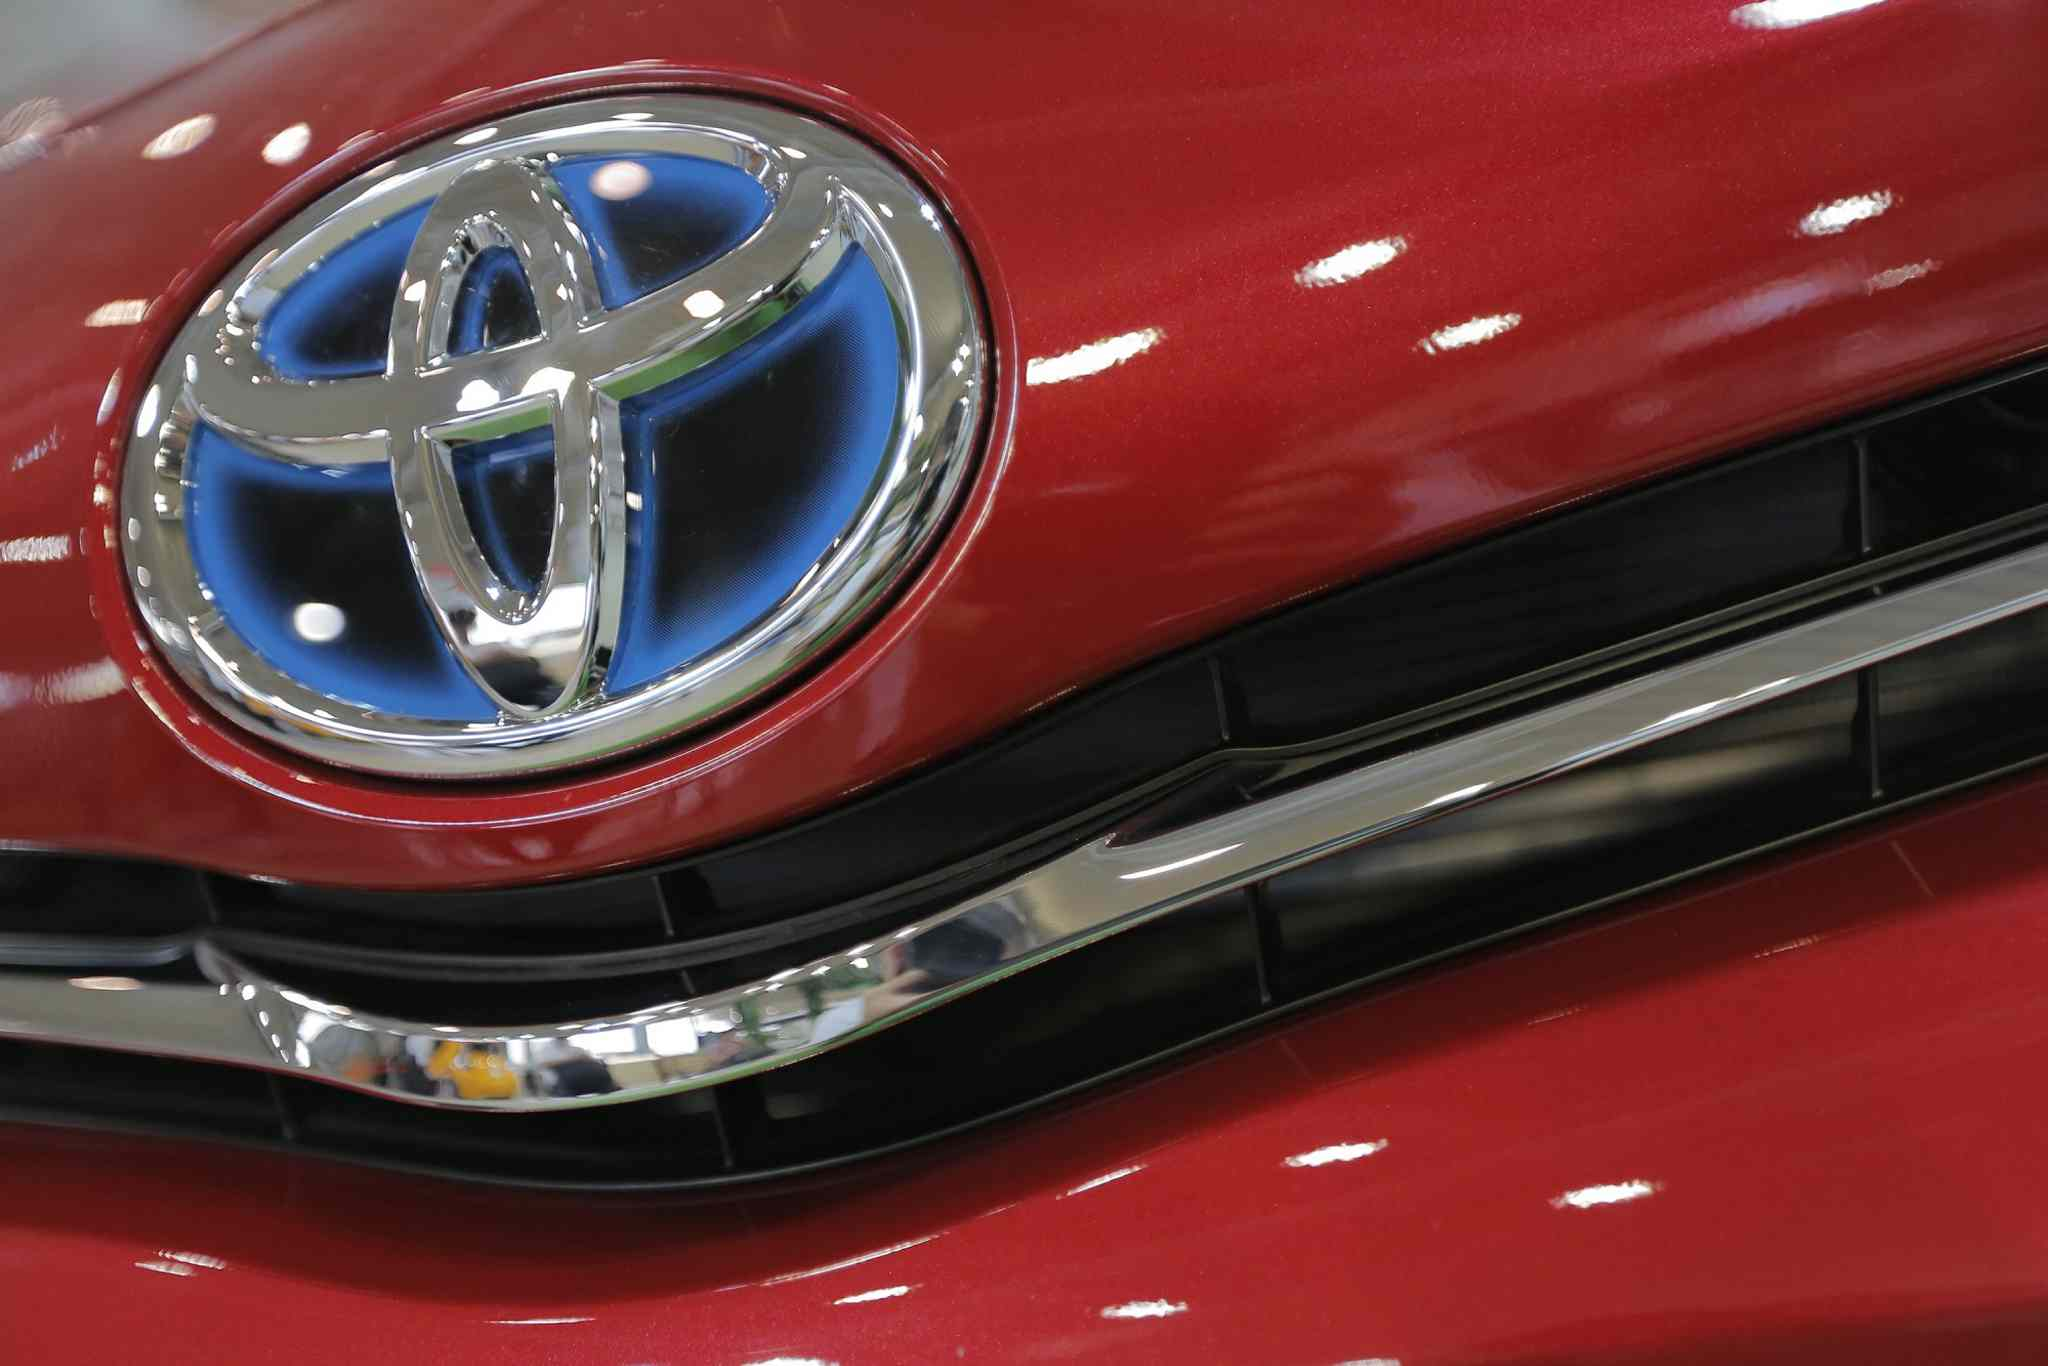 Toyota Motor Corp. sold a record 9.98 million vehicles worldwide last year and aims to top the 10-million-unit mark this year.